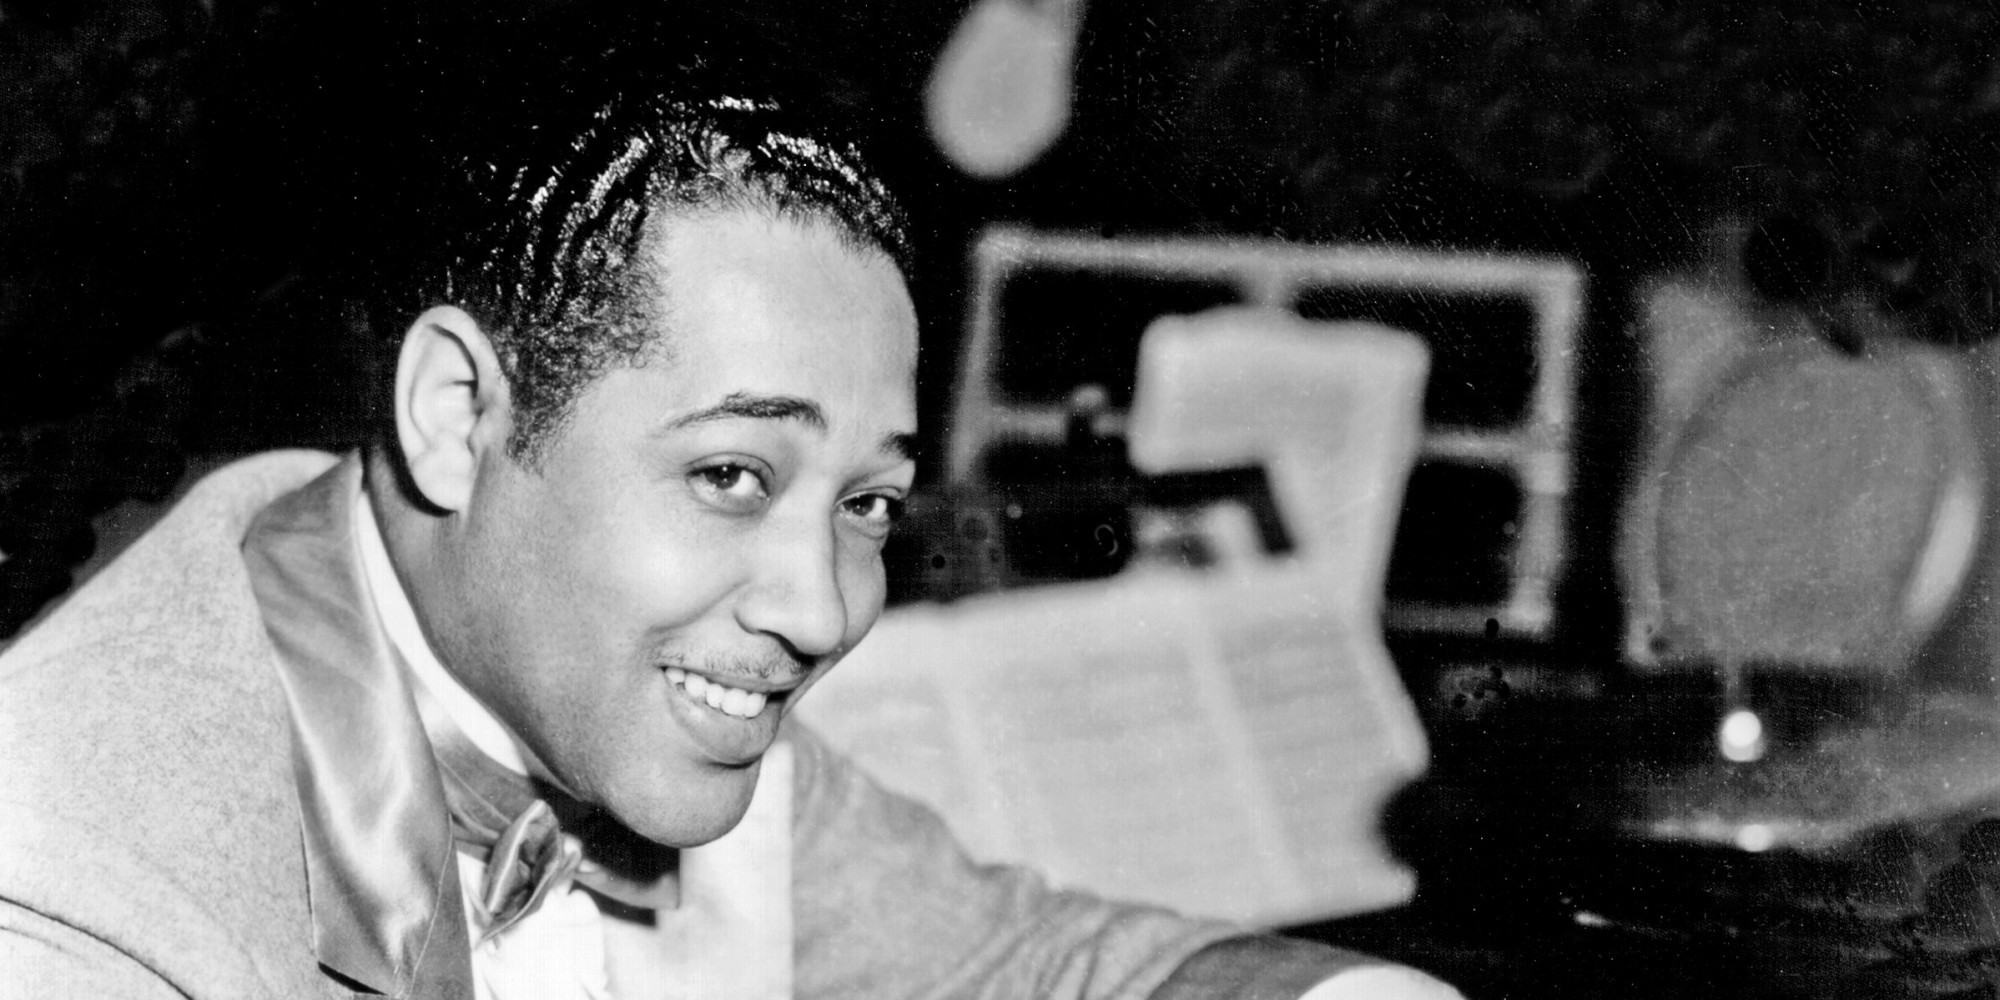 CIRCA 1930:  Composer Duke Ellington poses for a portrait composing at the piano in circa 1930. (Photo by Michael Ochs Archives/Getty Images)